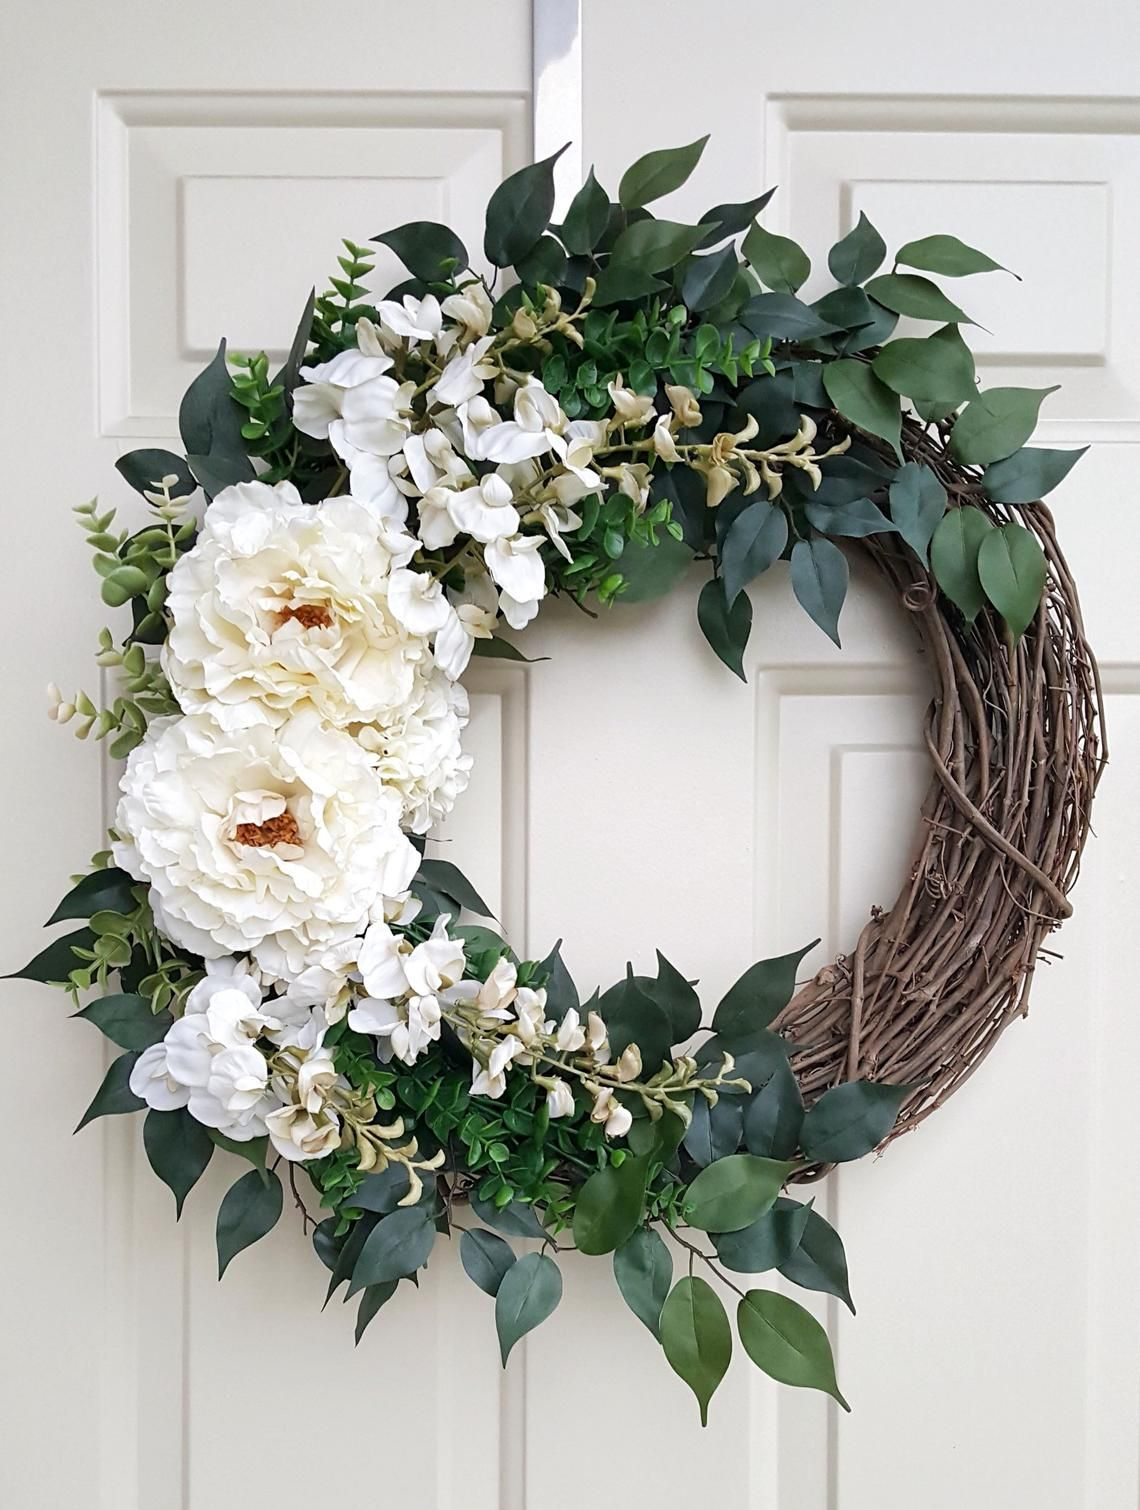 Photo of White Peony Wreath on Grapevine | Front Door Wreath for All Seasons | Neutral Wreath with White Flowers | Year Round Wreath